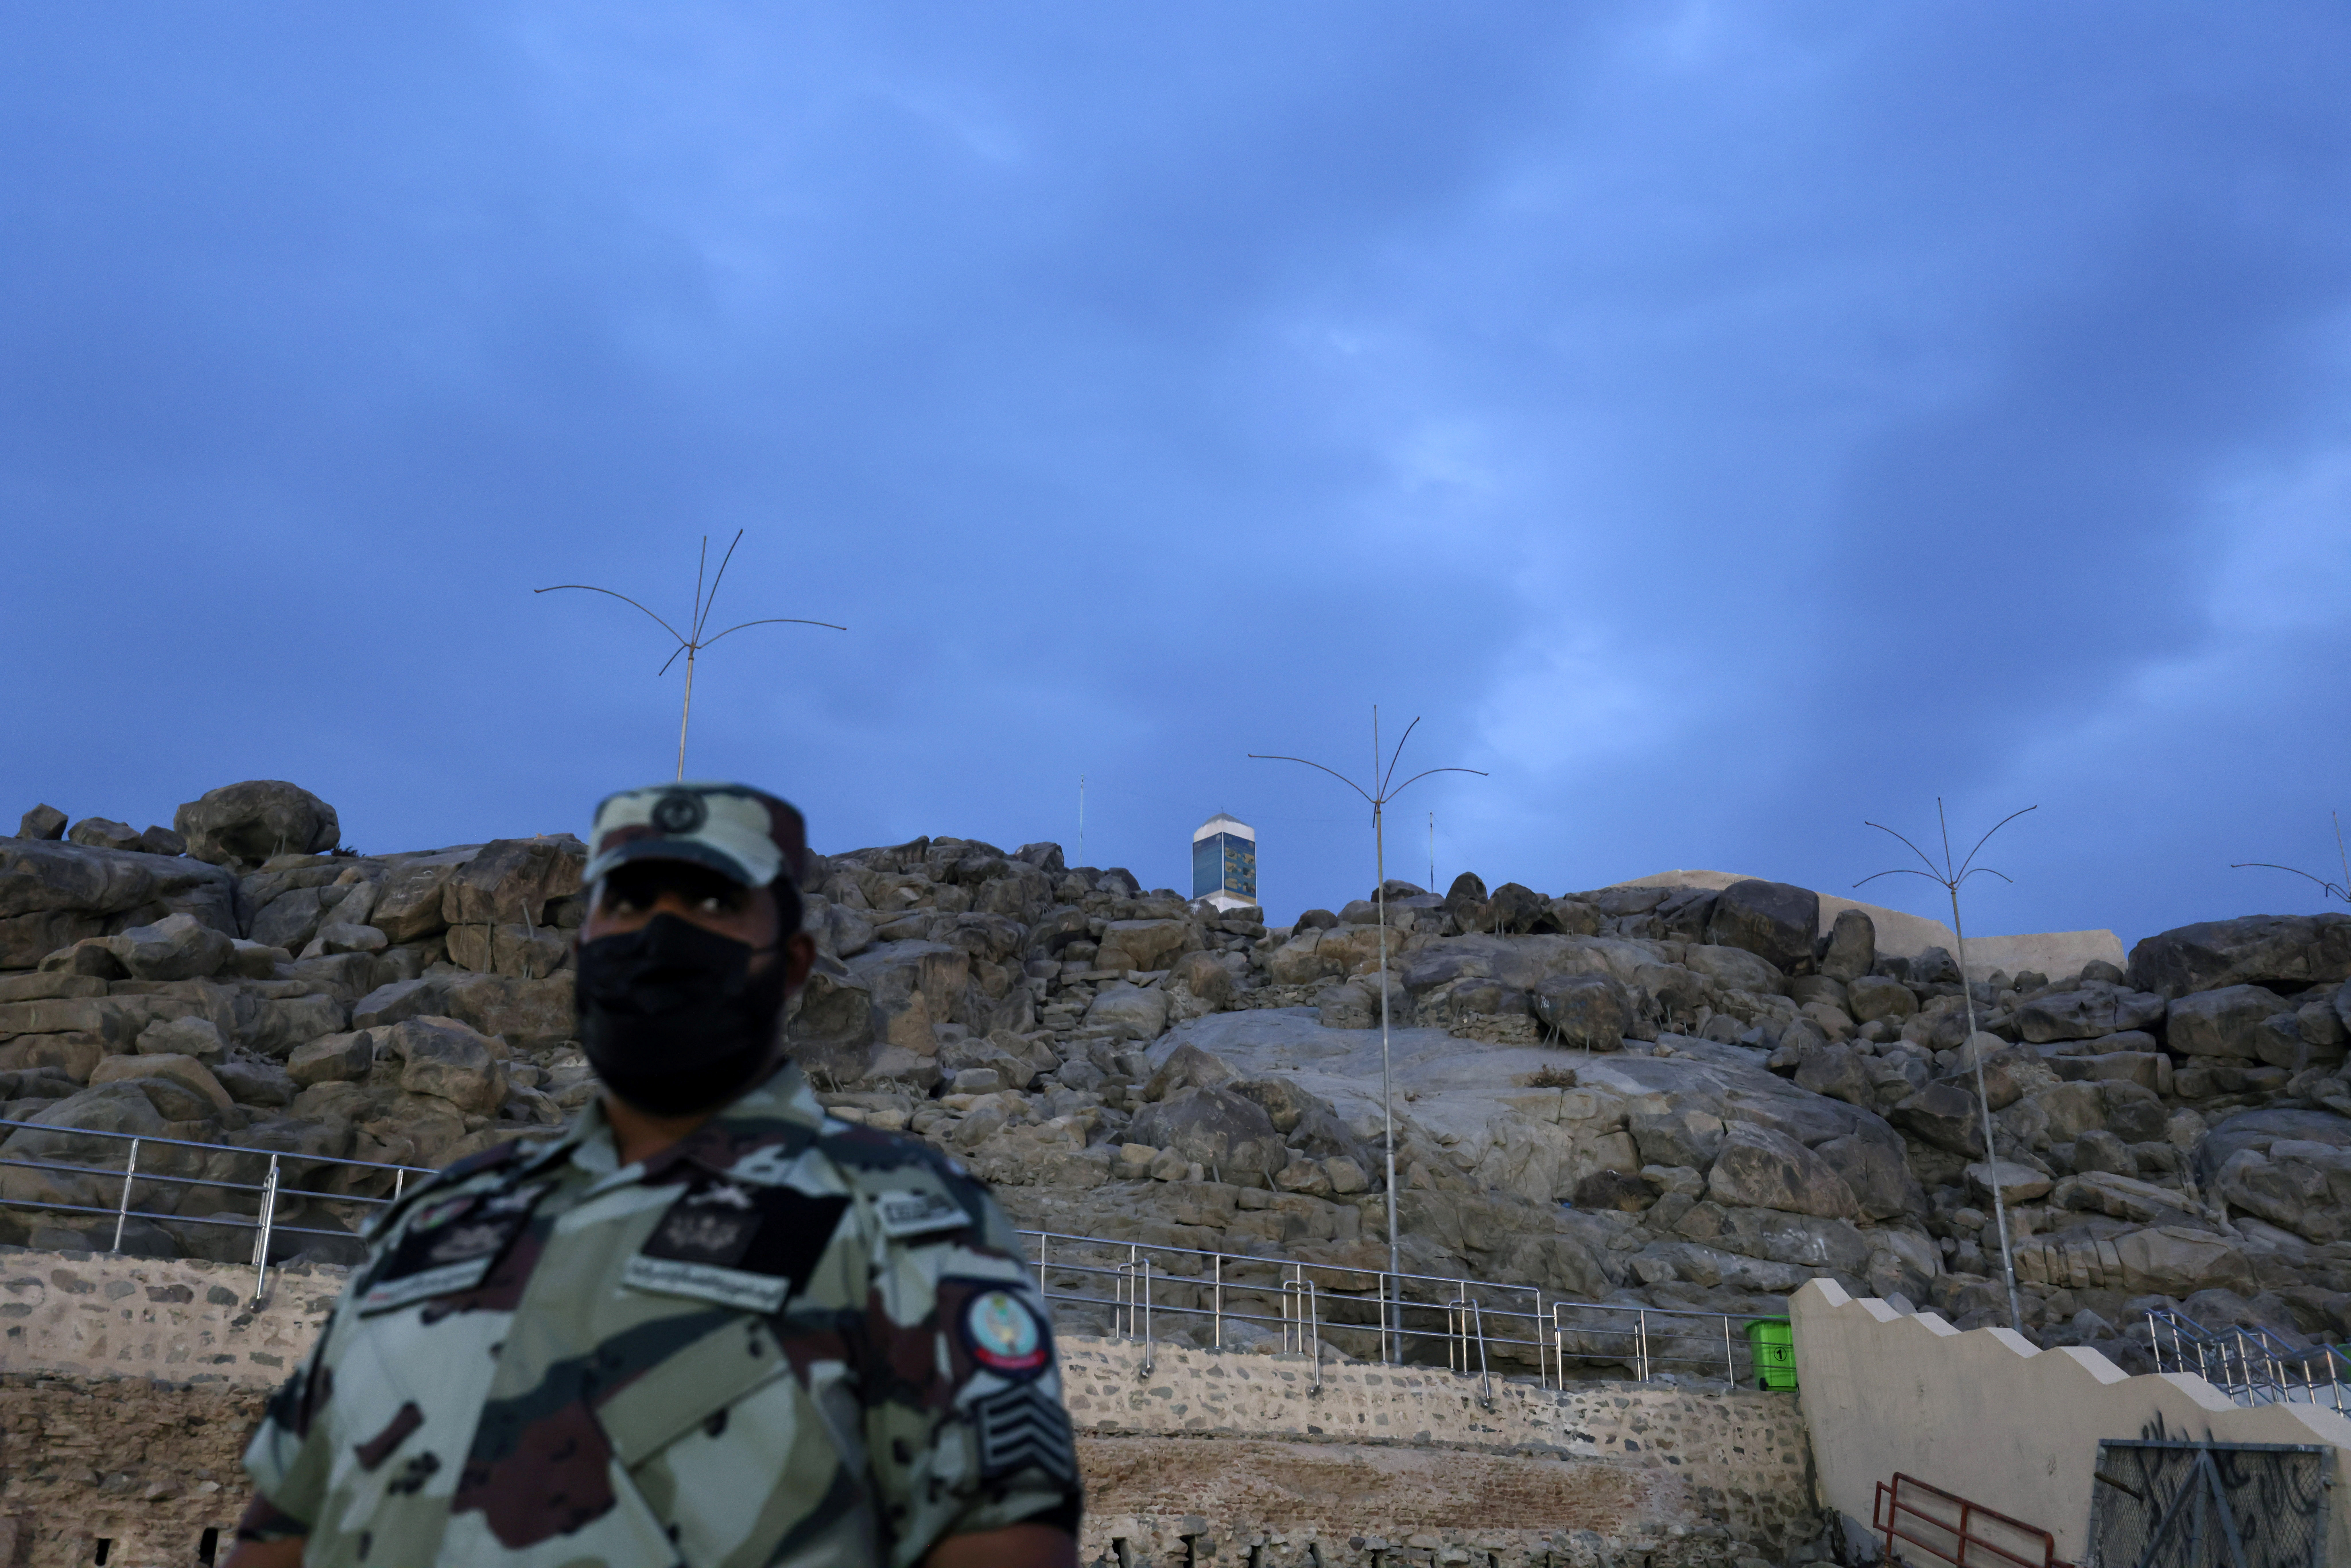 The Mount of Mercy is pictured as a member of Saudi security forces stands guard at the plain of Arafat where Muslims gather during the annual Haj pilgrimage, outside the holy city of Mecca, Saudi Arabia July 19, 2021. REUTERS/Ahmed Yosri